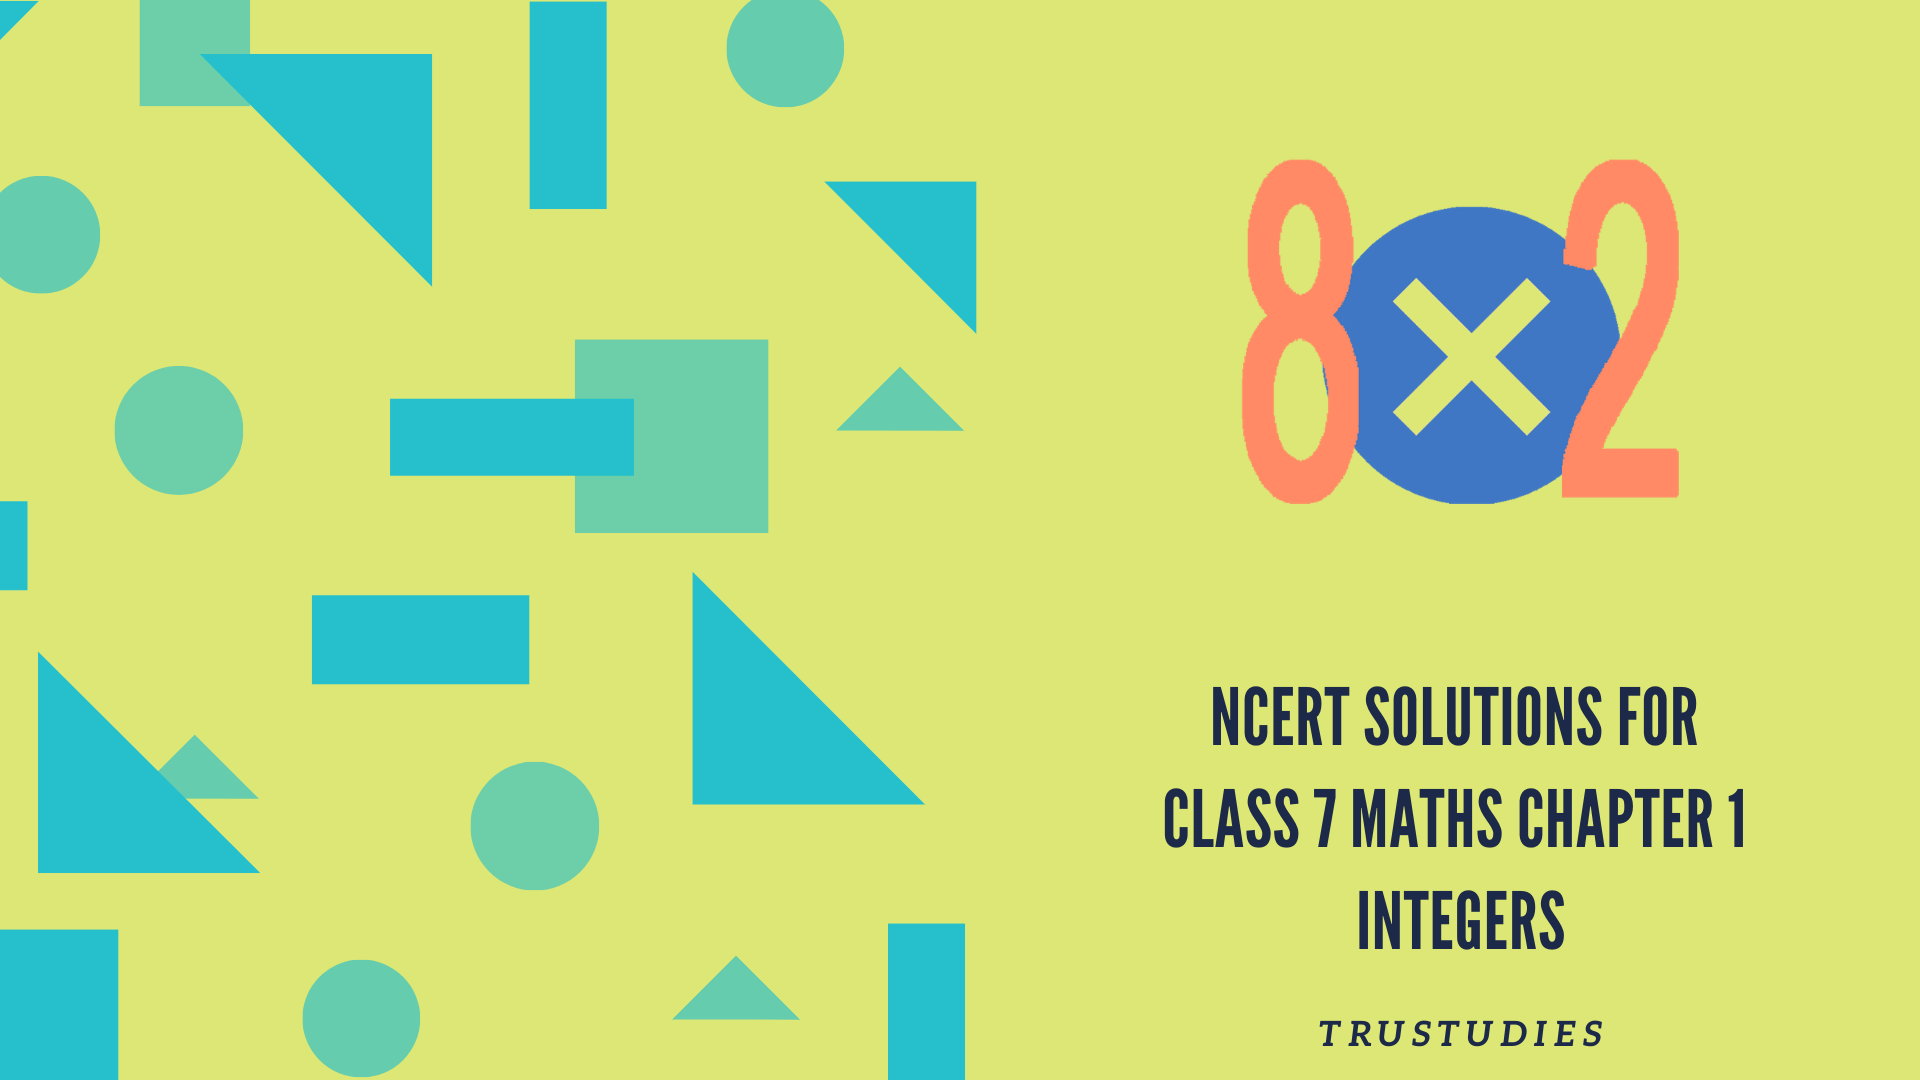 NCERT solutions for class 7 maths chapter 1 integers banner image